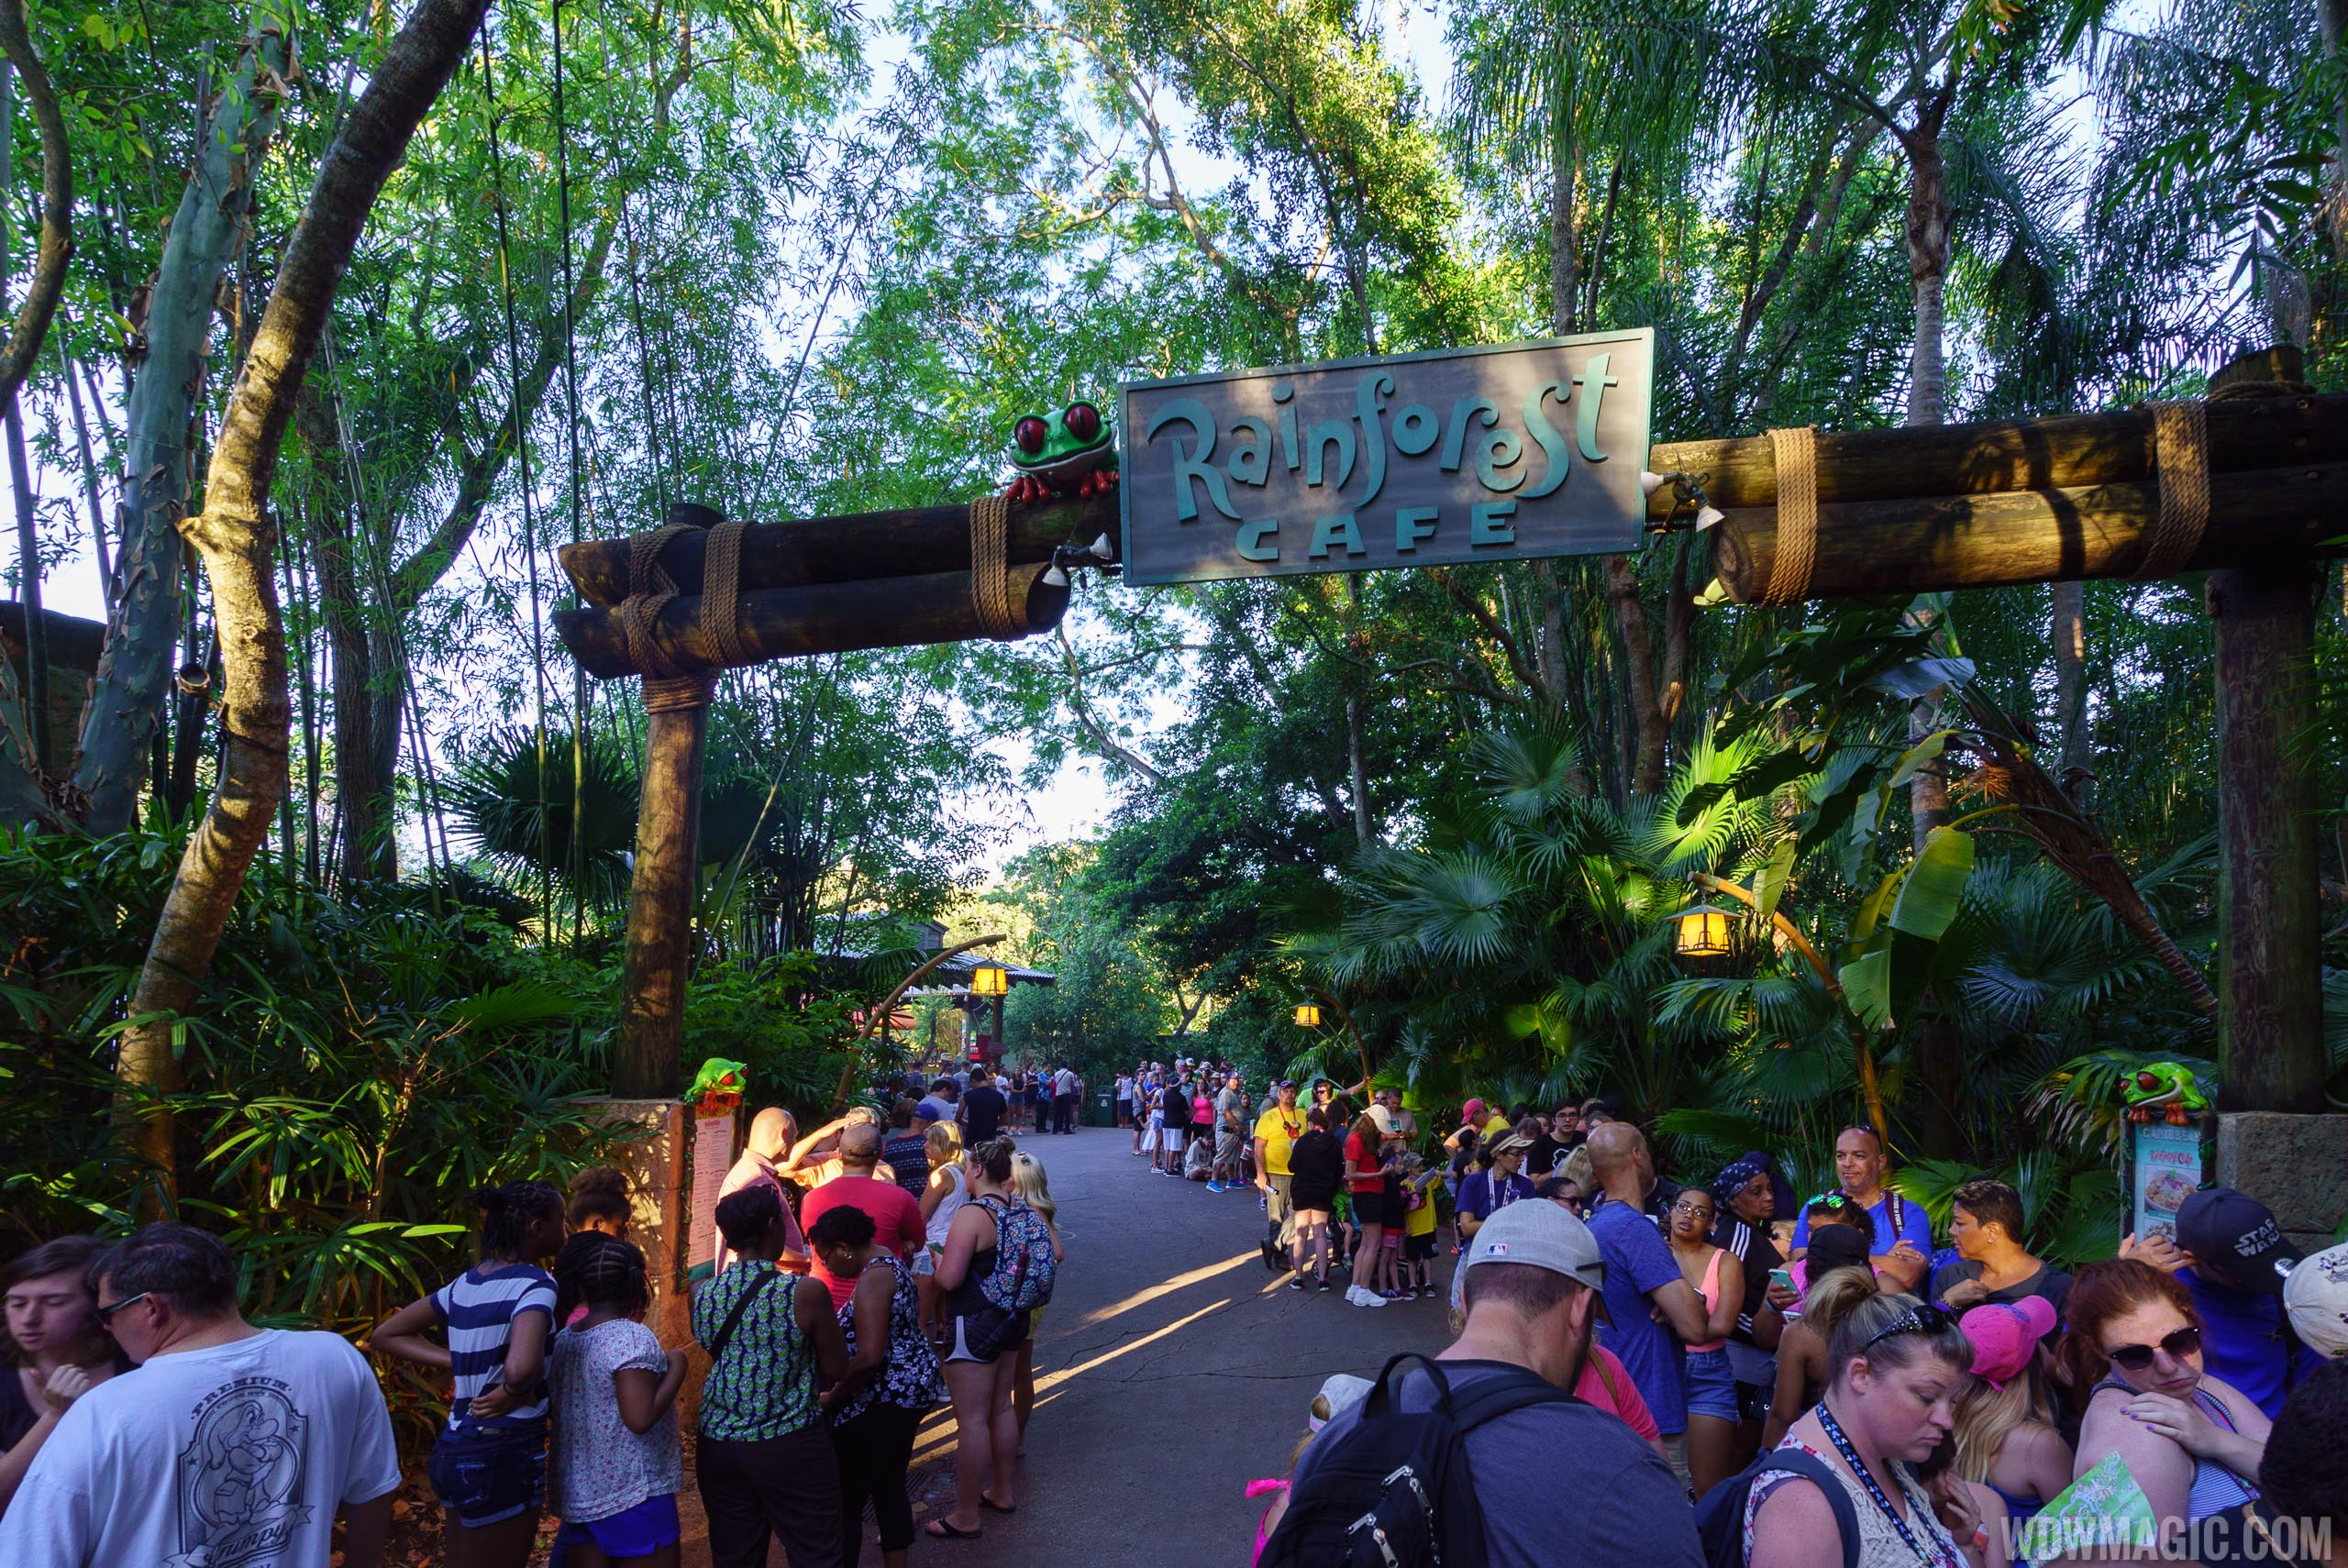 The Rainforest Cafe area is being used as queue space